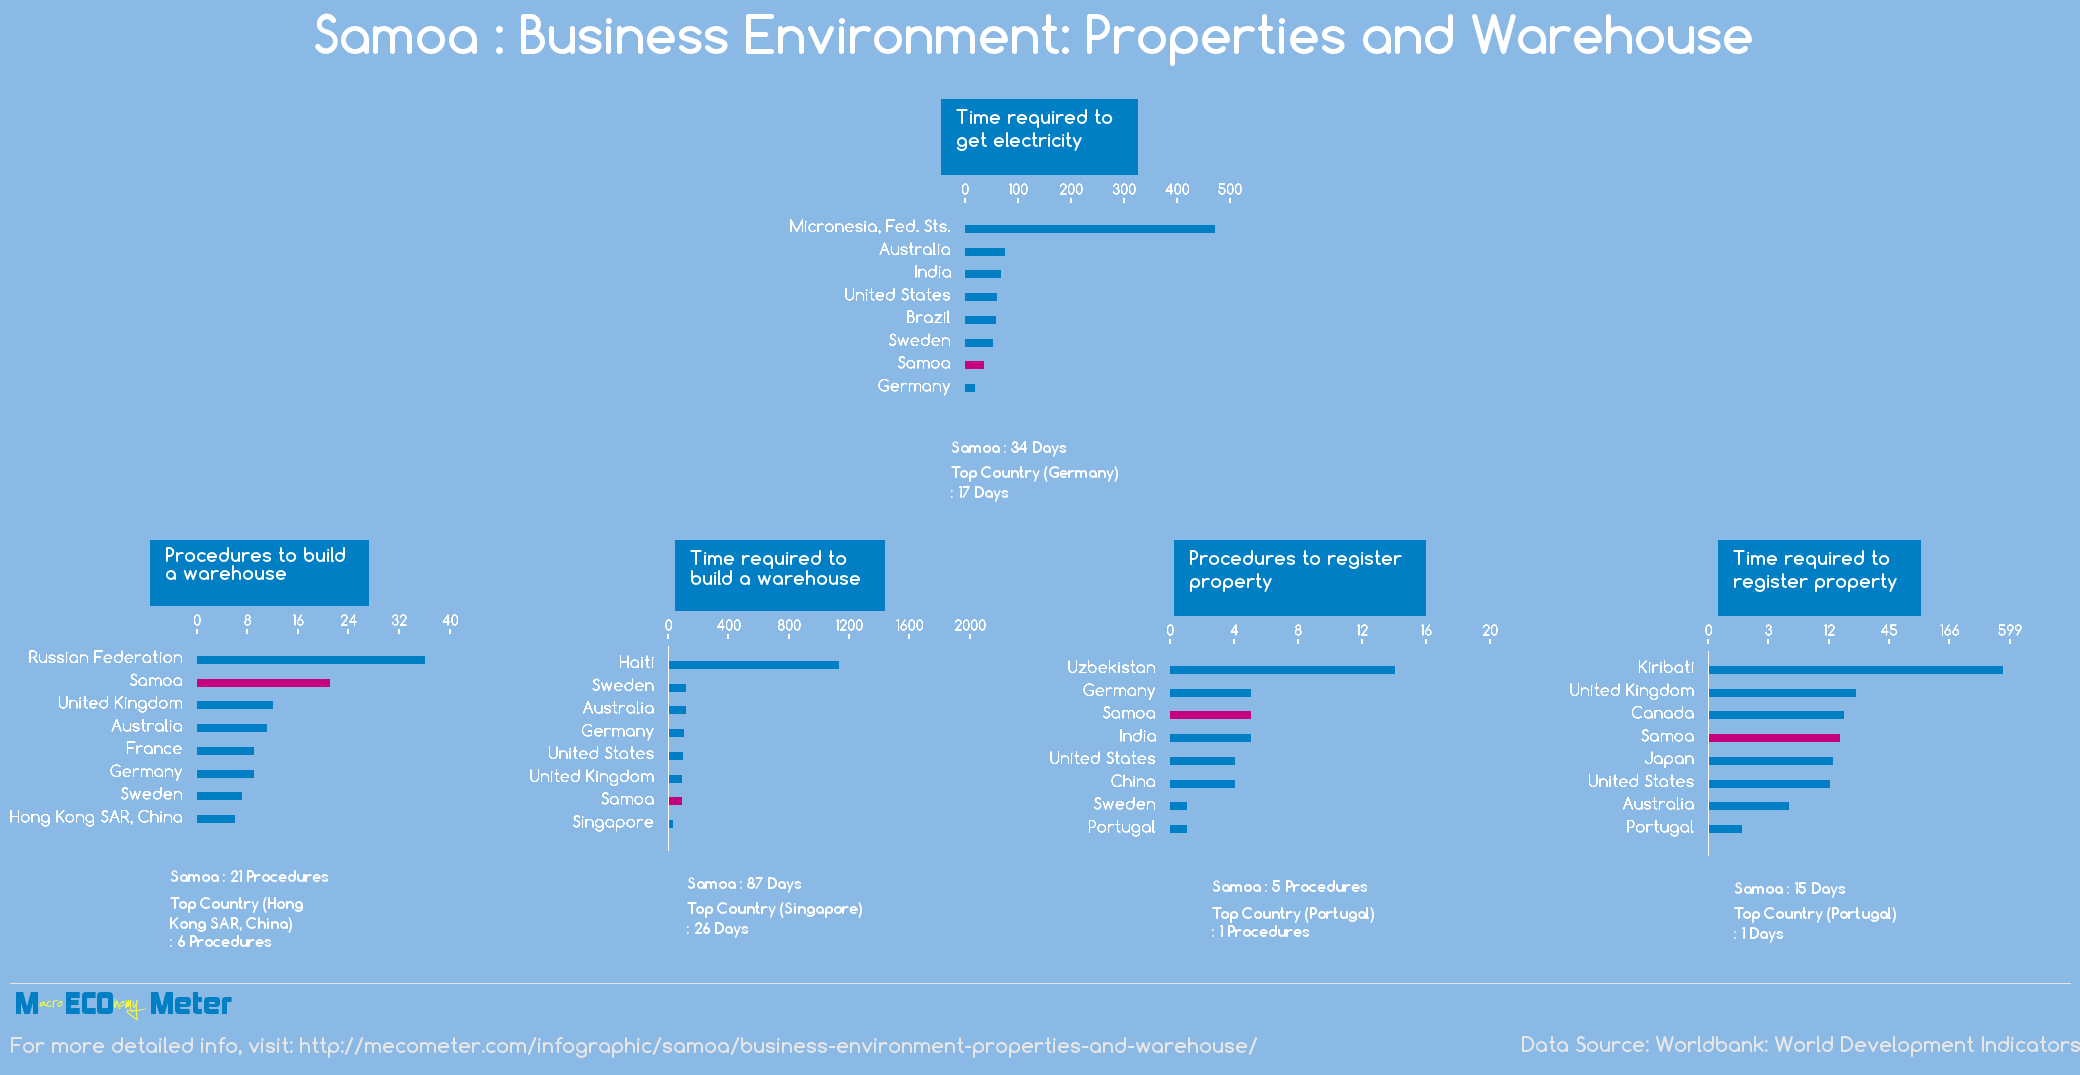 Samoa : Business Environment: Properties and Warehouse